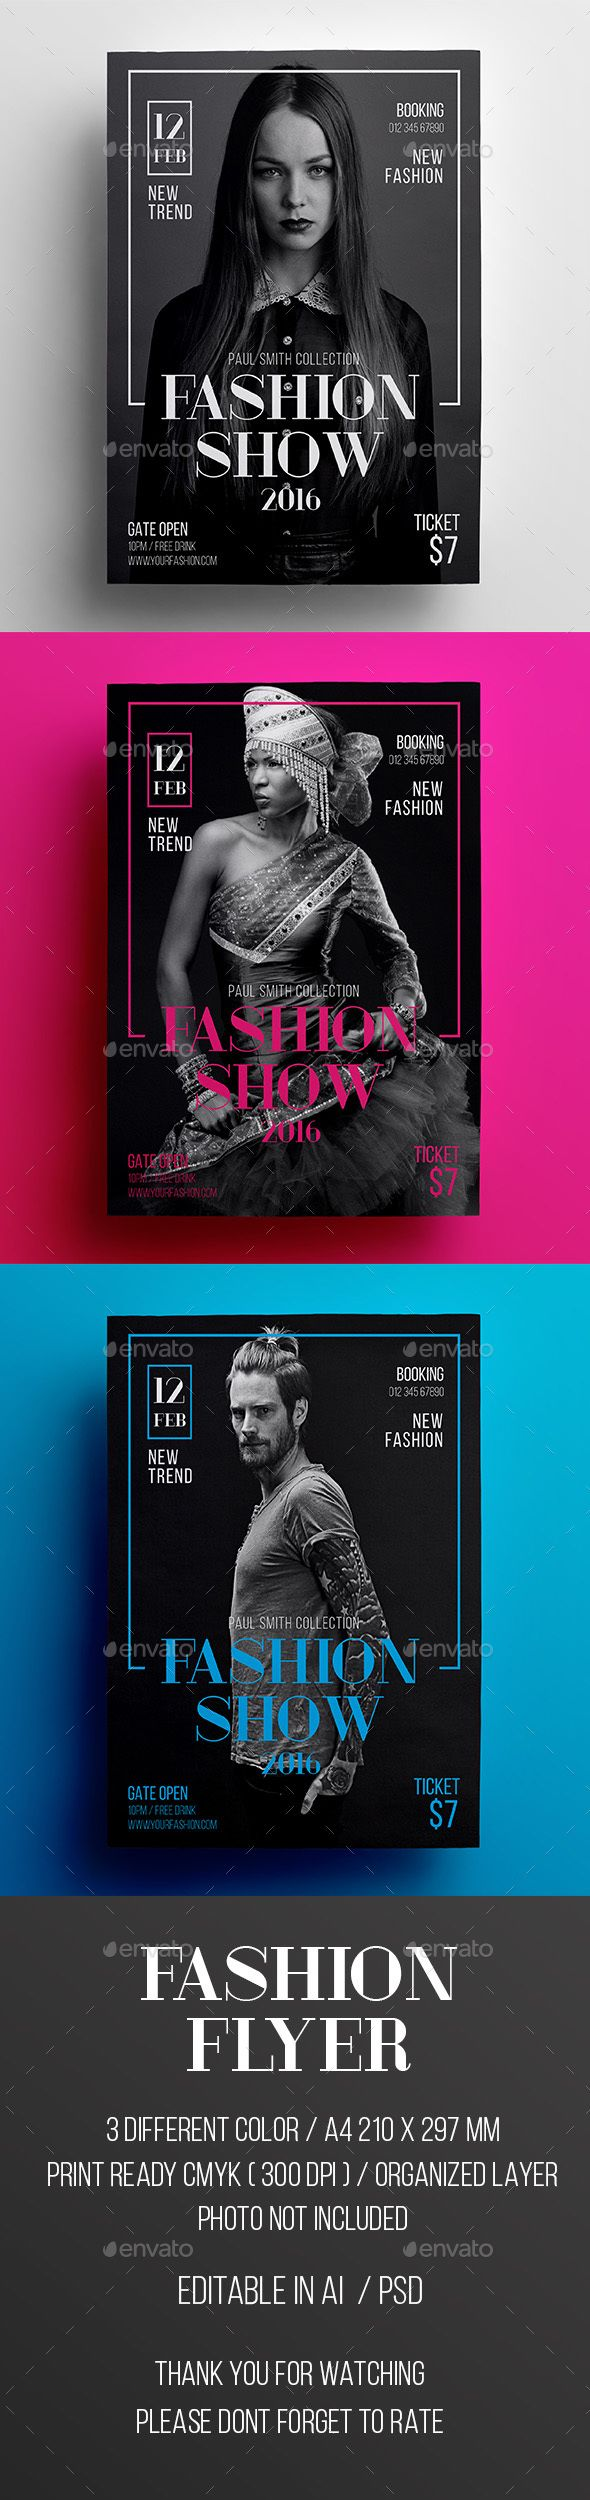 Best 20 Luxury Brochure ideas – Fashion Design Brochure Template